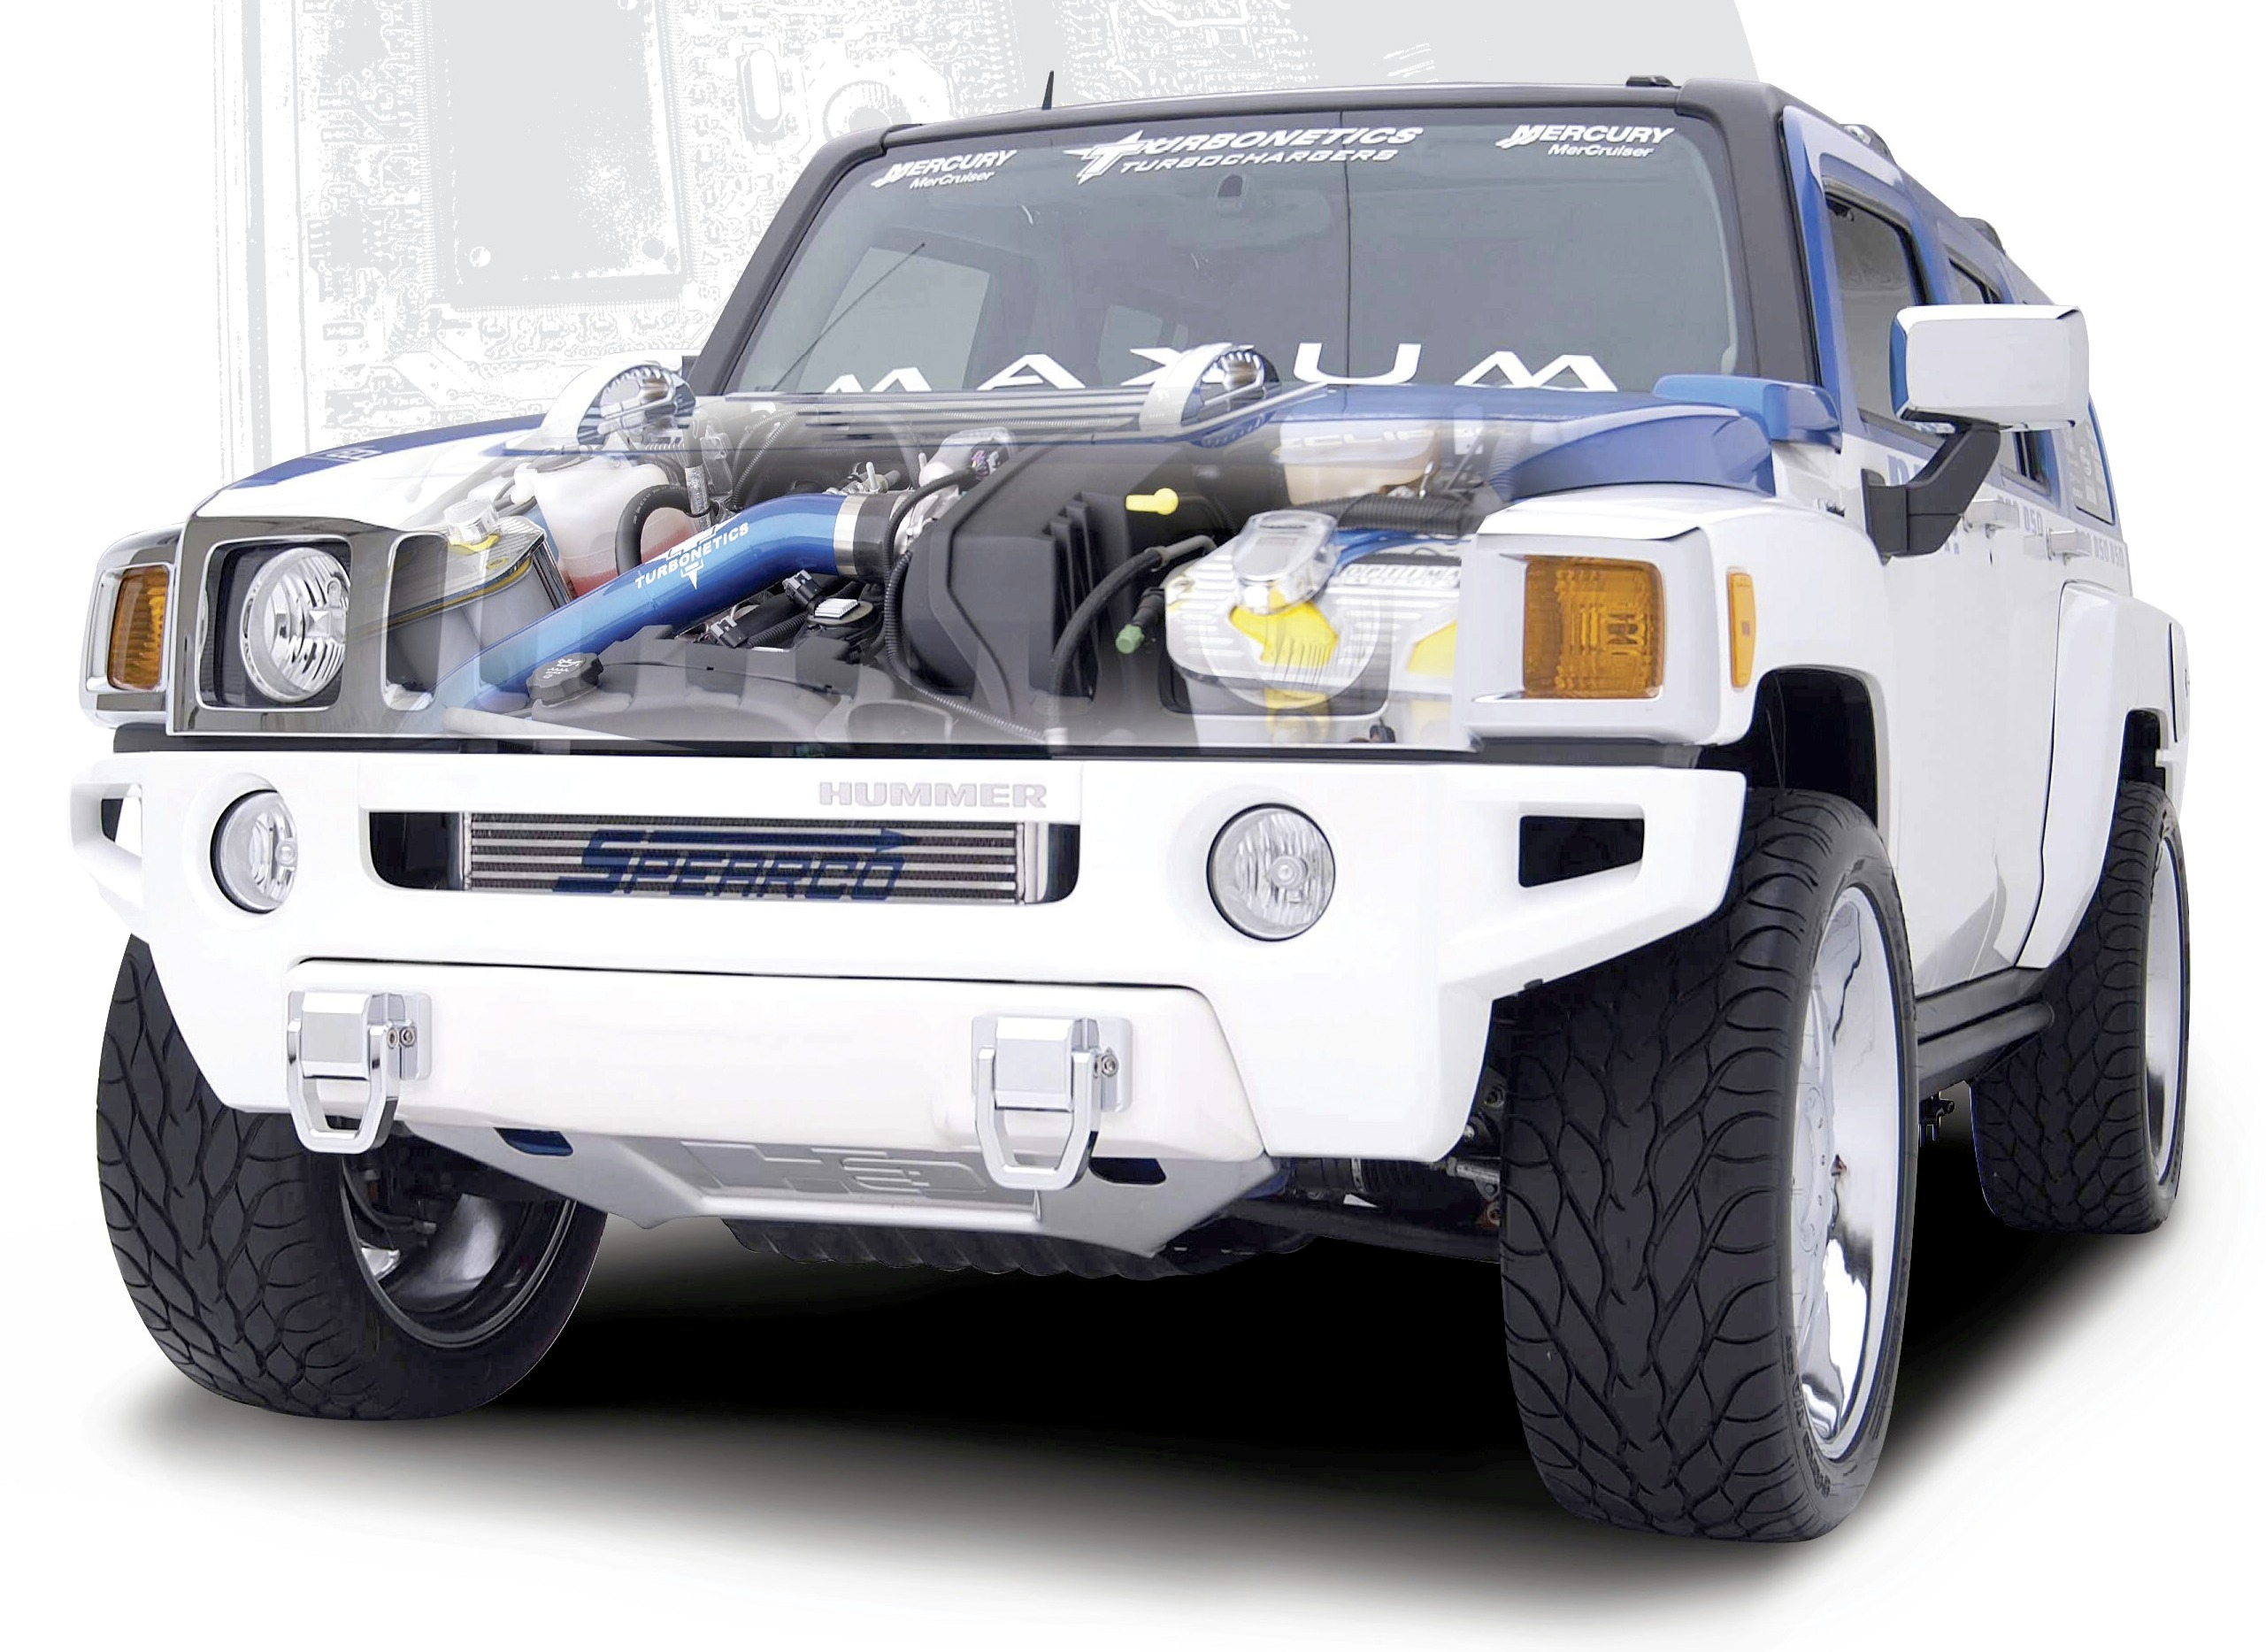 Turbonetics Hummer H3 Bolt Turbo System Released